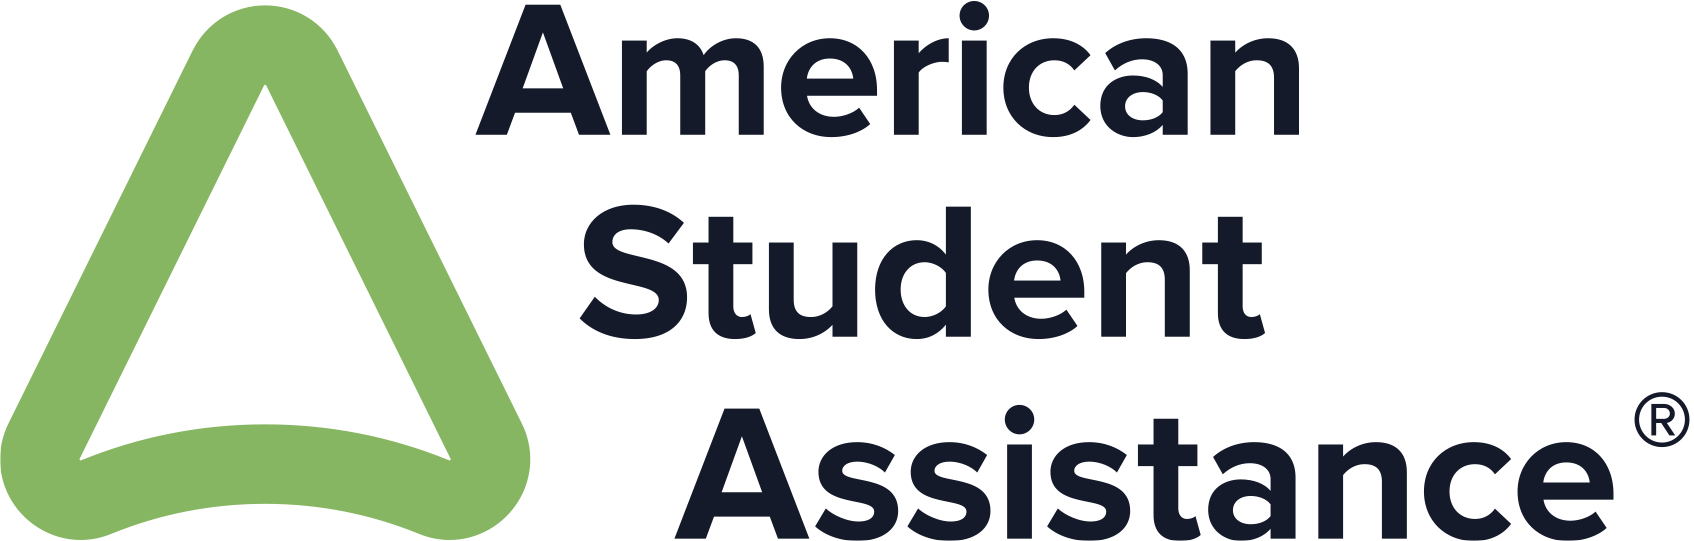 AMERICAN STUDENT ASSISTANCE (ASA)